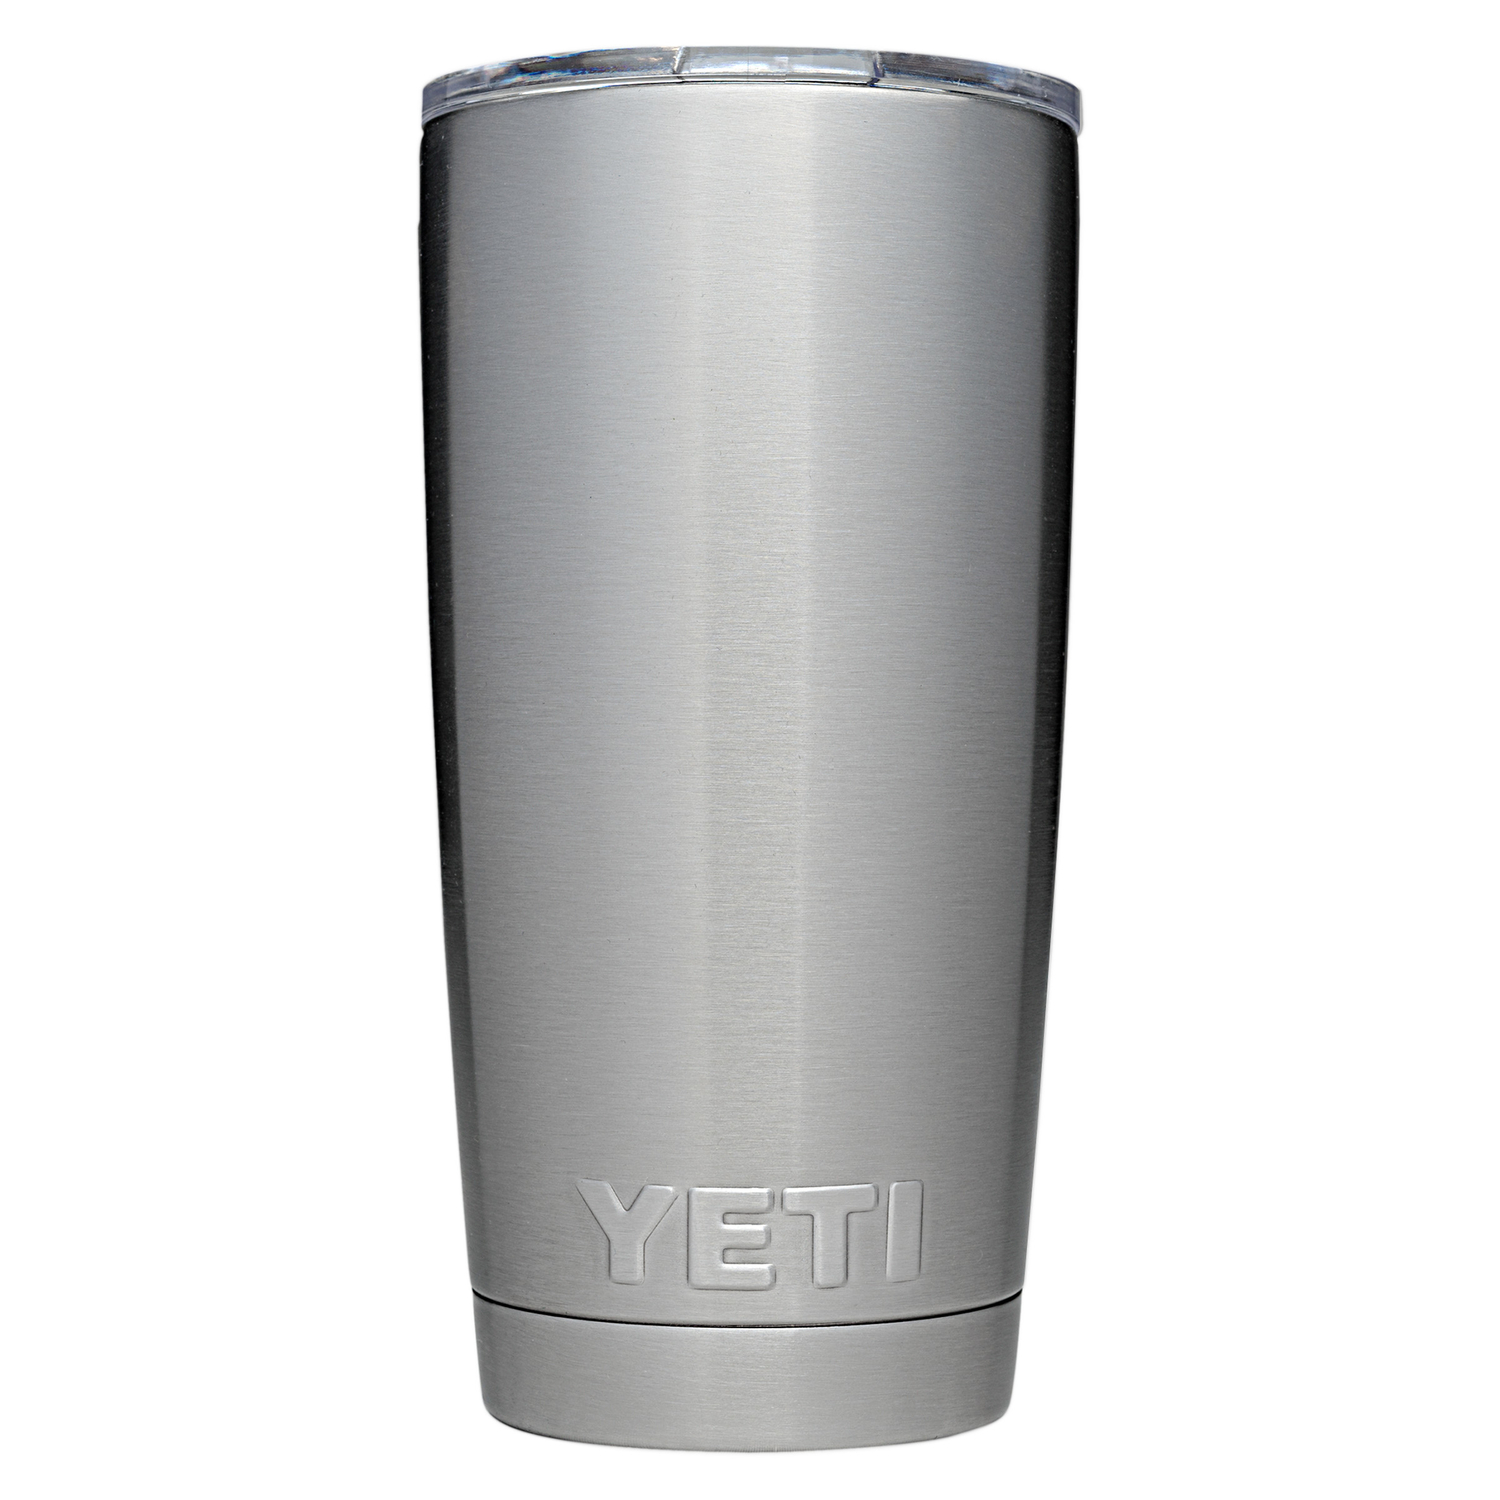 YETI  Rambler MagSlider  Stainless Steel  Insulated Tumbler  20 oz. BPA Free Stainless